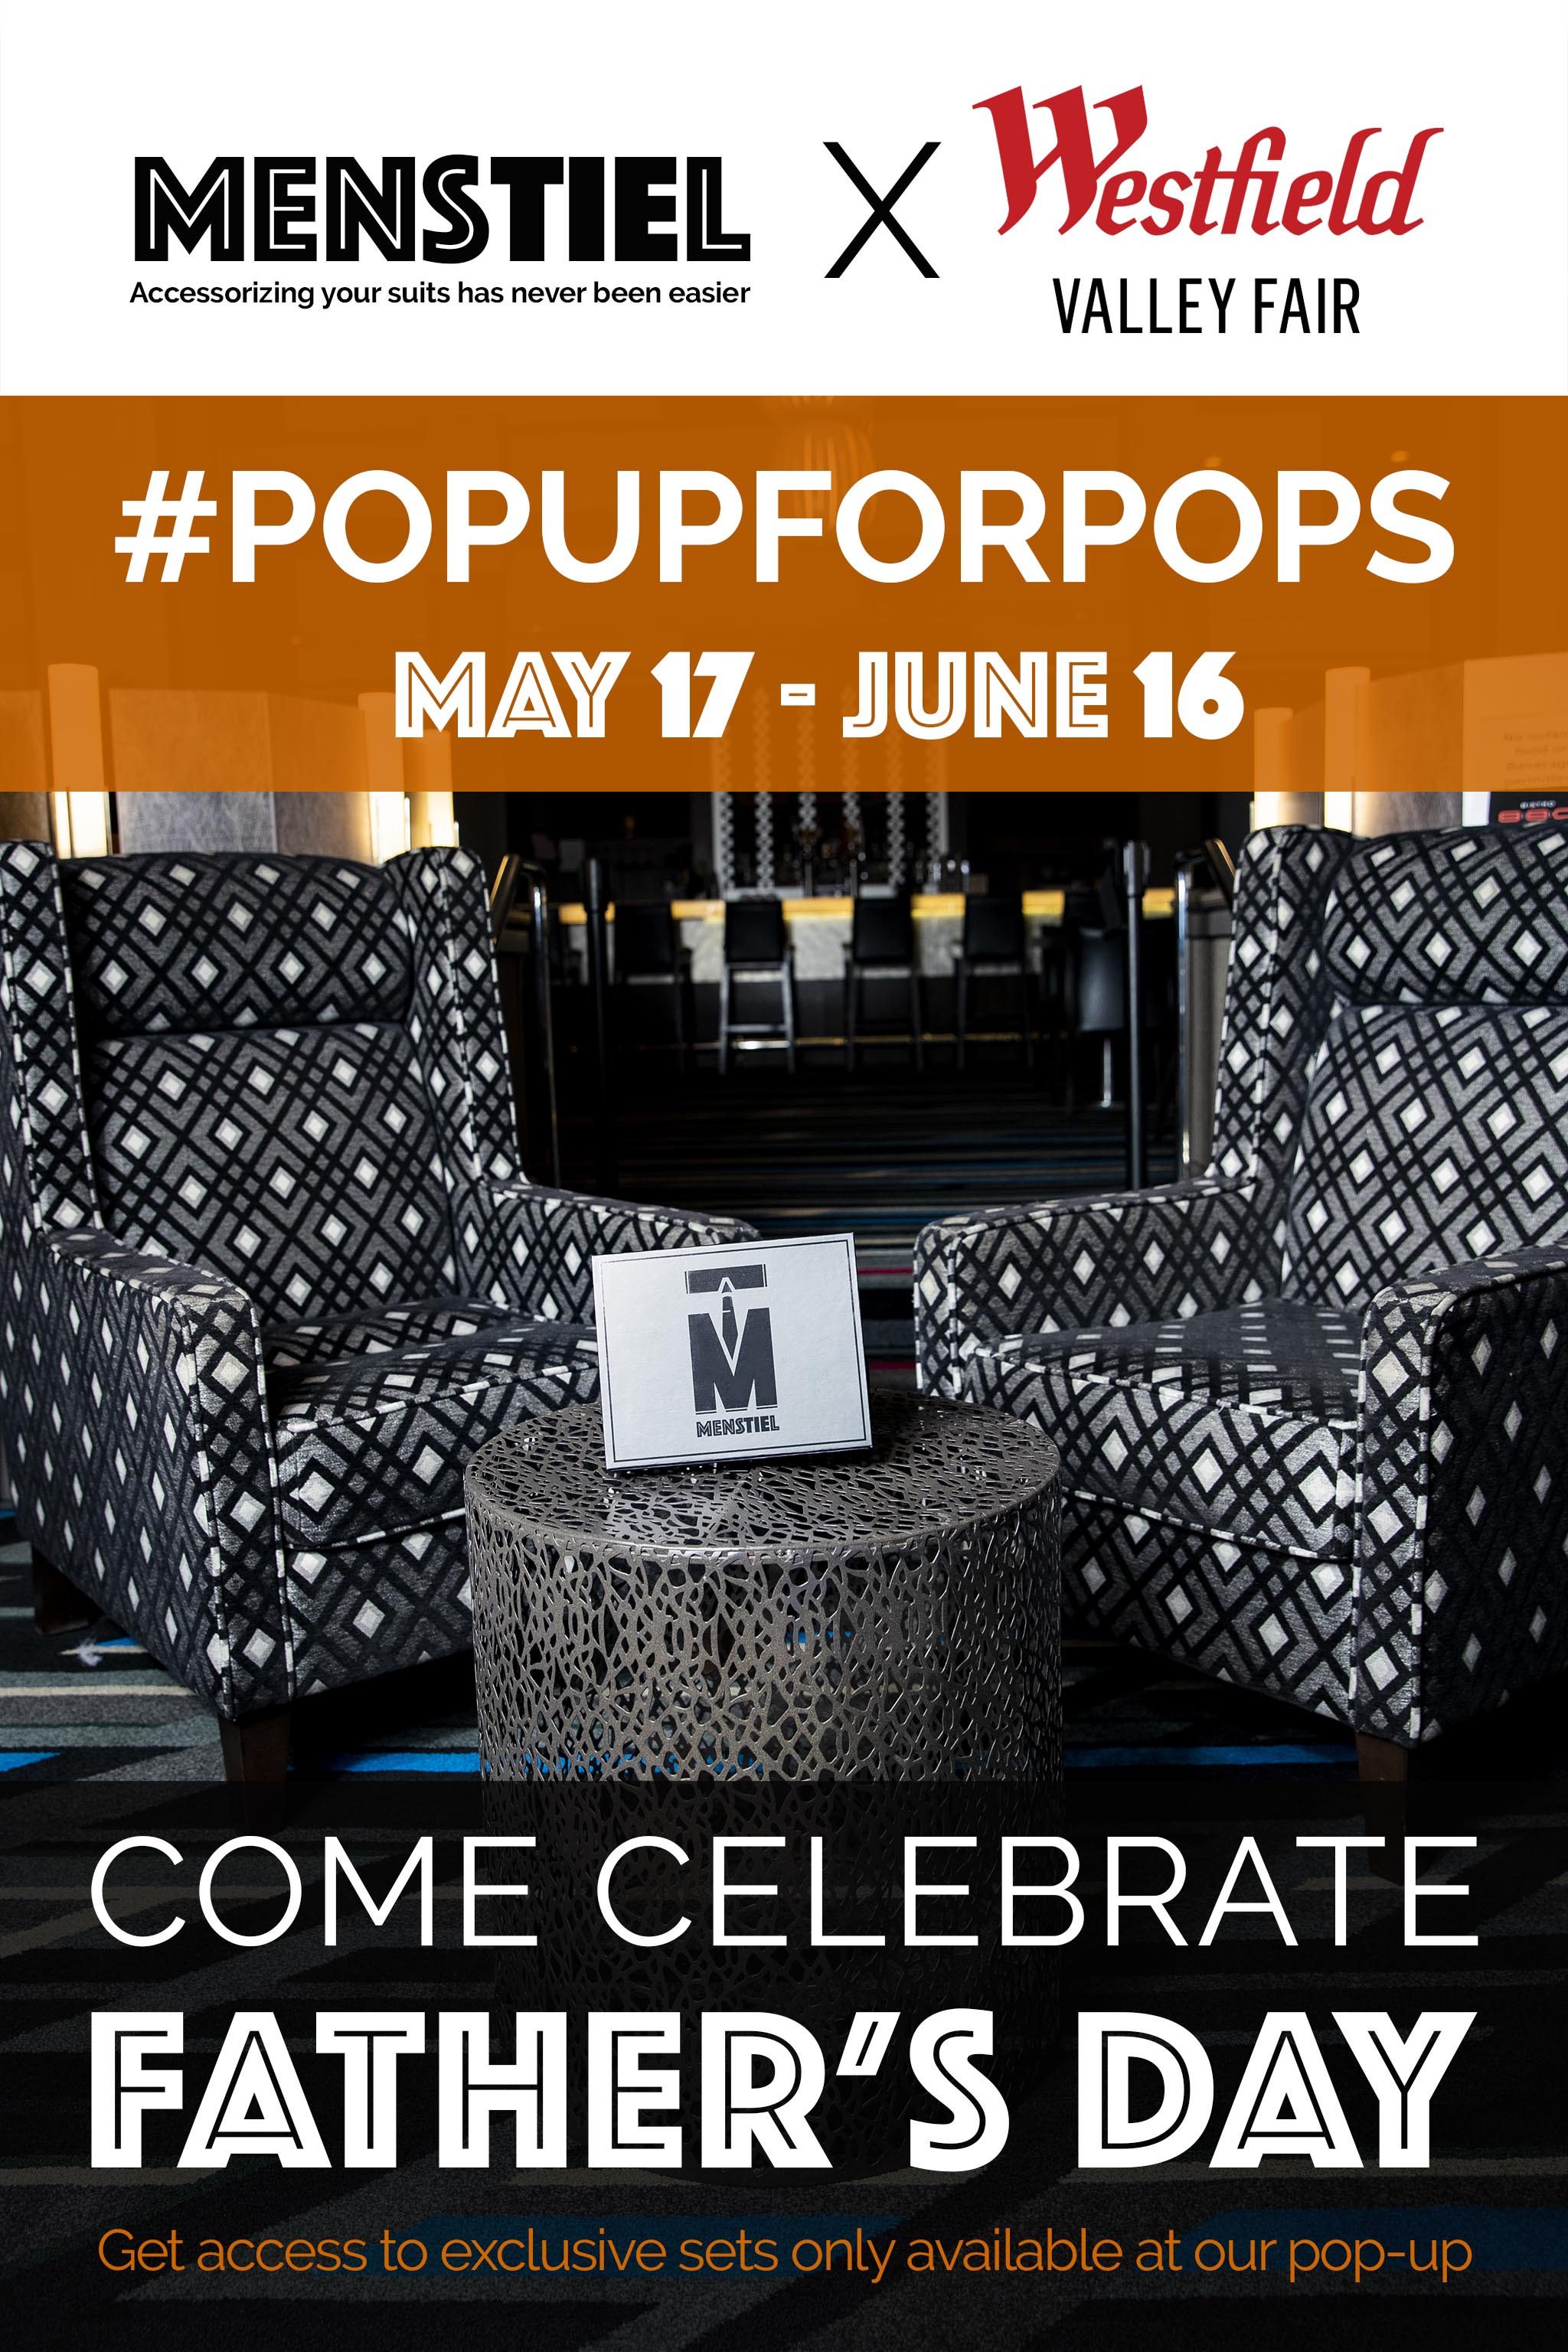 Menstiel Pop-Up at Westfield Valley Fair from May 17 - June 16. #PopUpForPops for Father's Day Celebration